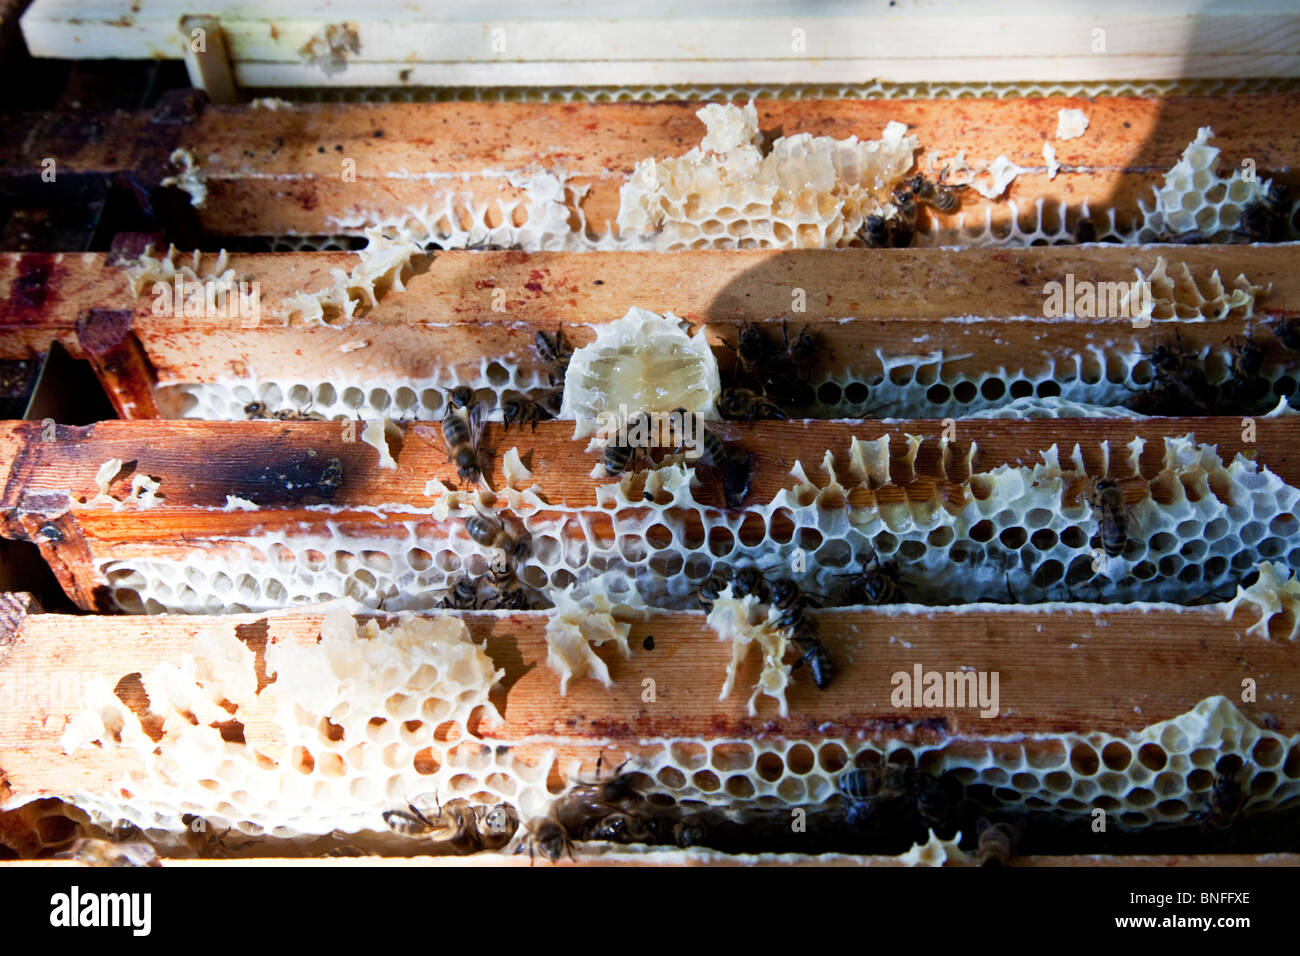 A close-up of the frames inside a hive box - Stock Image